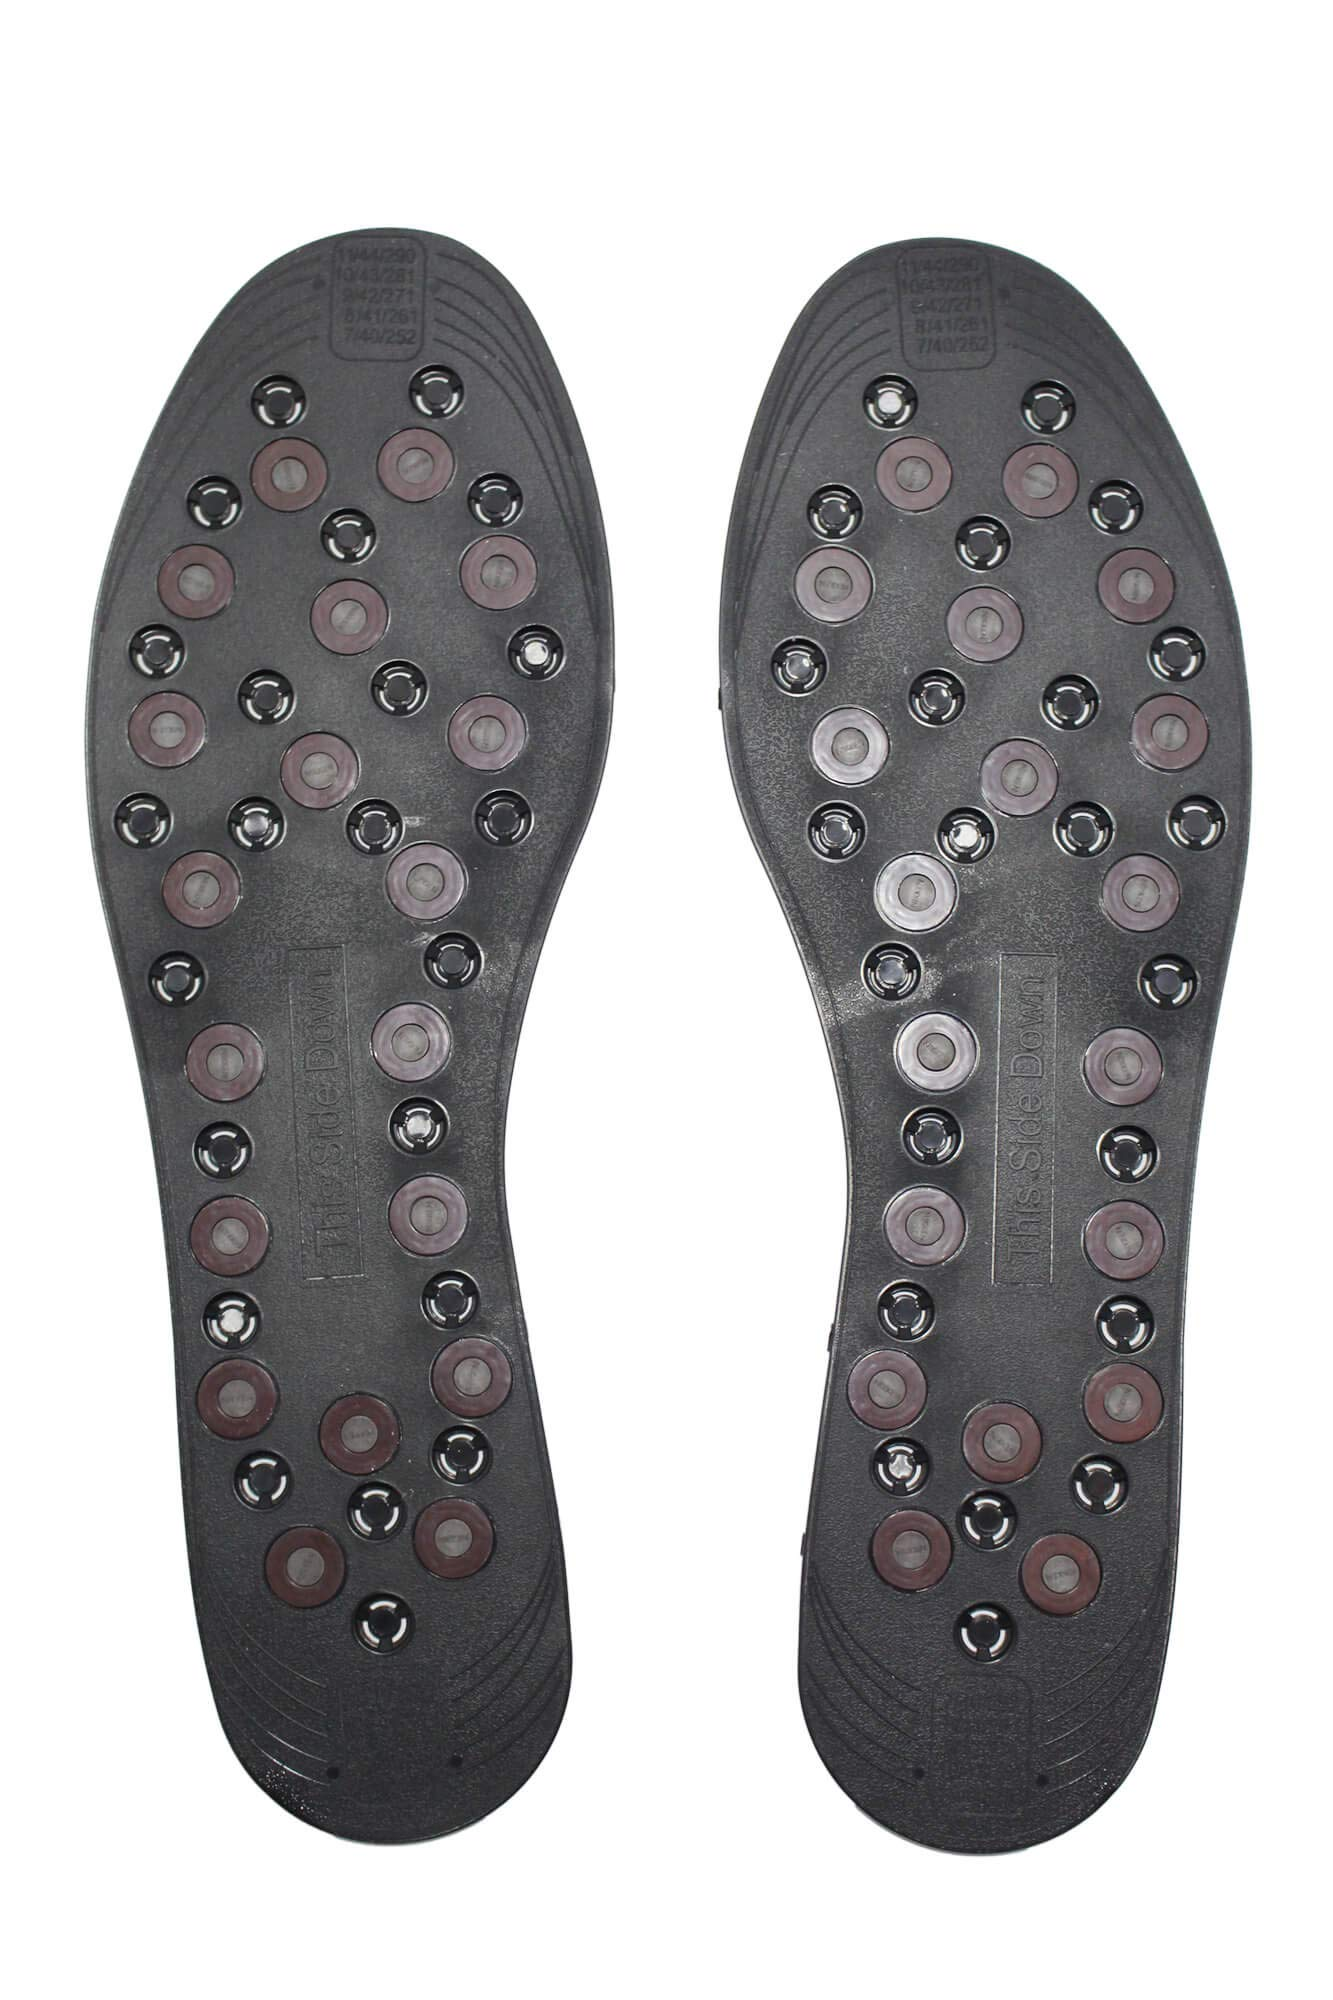 Nikken 1 mStrides Insoles, 20211, Men Shoe Sizes 7 to 12, Pair, Cut to Fit, Magnetic Therapy, Improve Blood Circulation, Kenko by NIKKEN